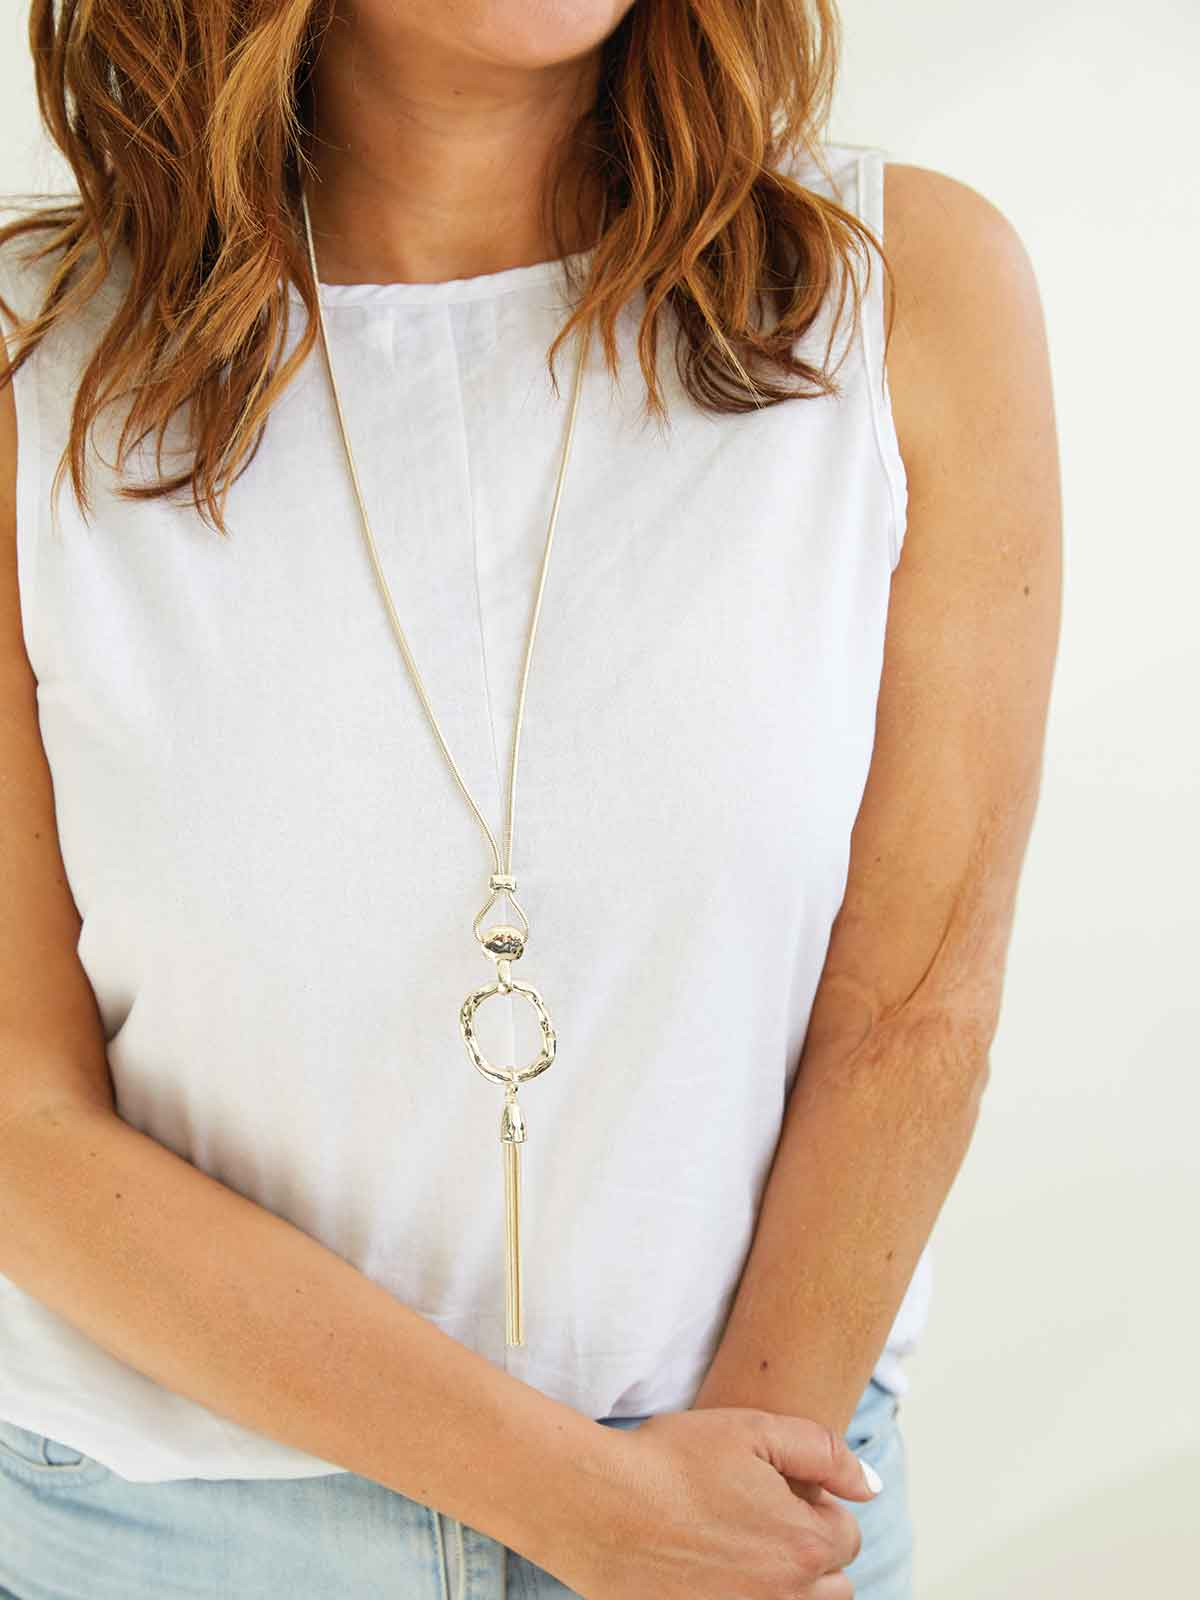 FEEL THE LIGHT SILVER NECKLACE